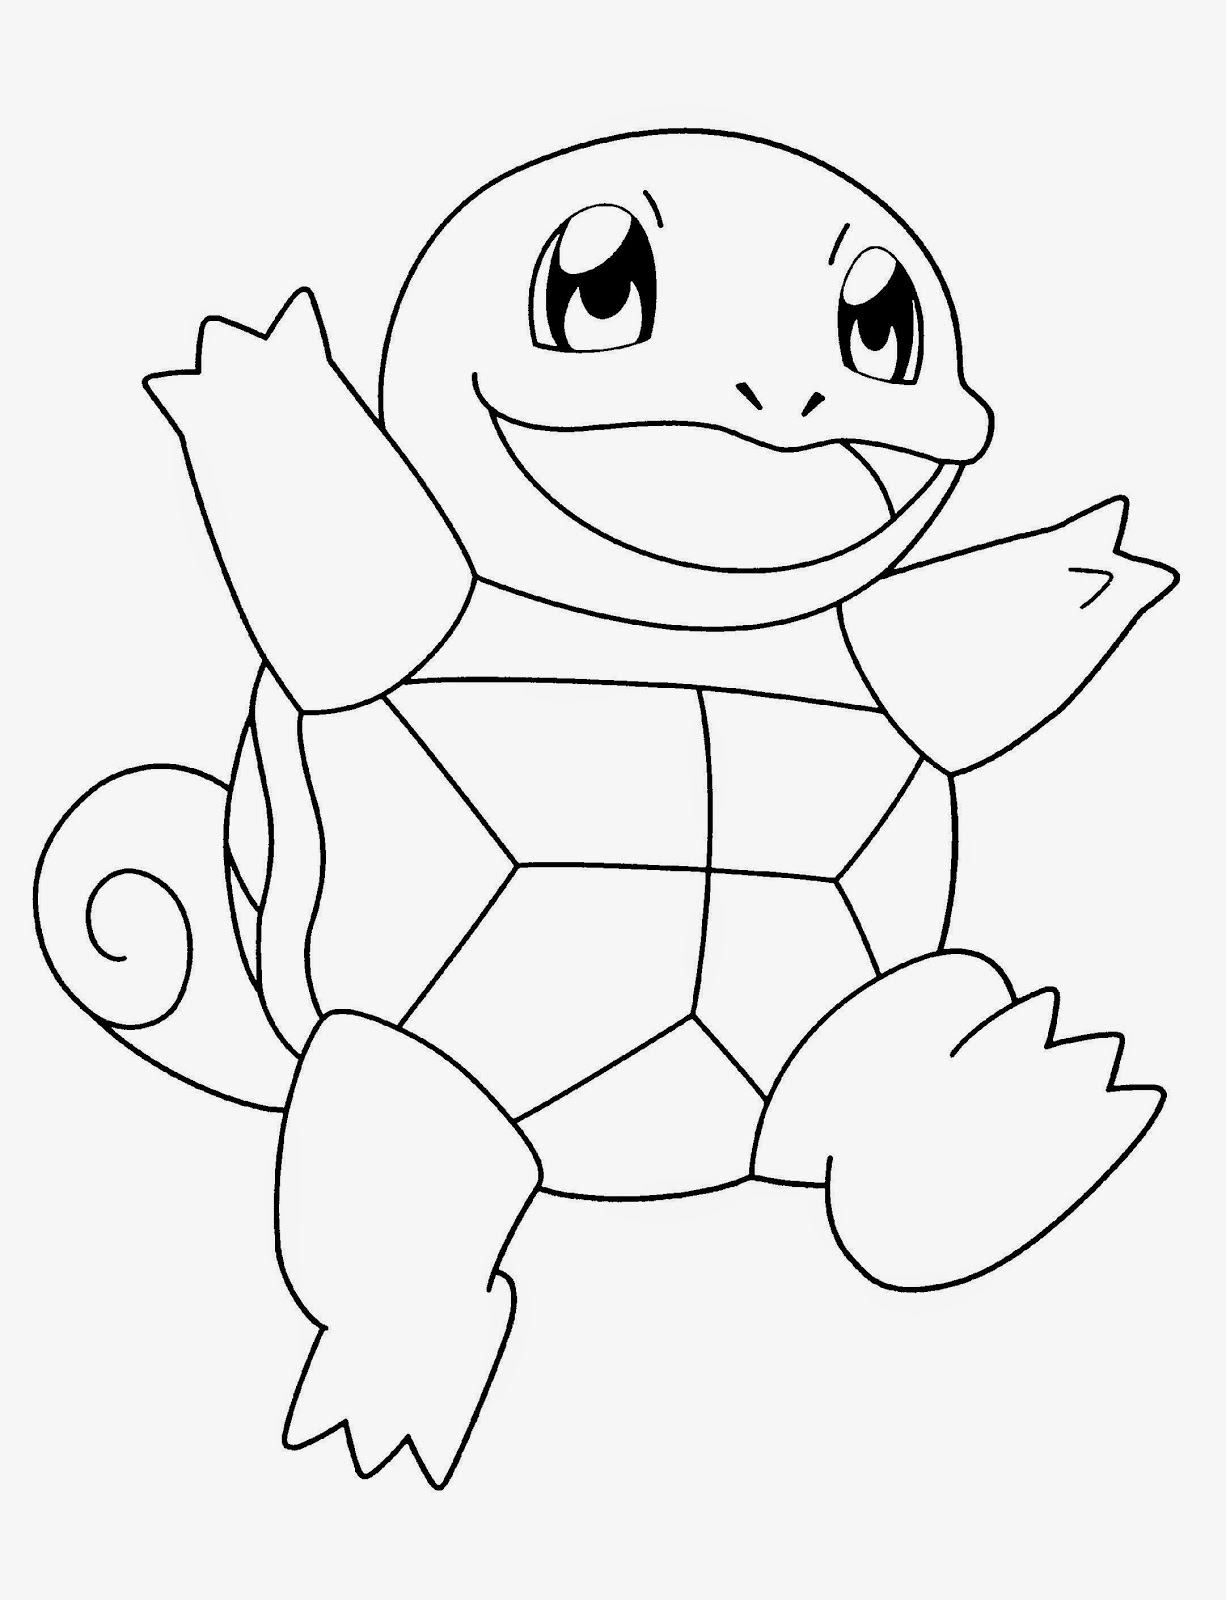 colouring pages of pokemon black and white 25 best coloring book pages pokemon of and pages black white colouring